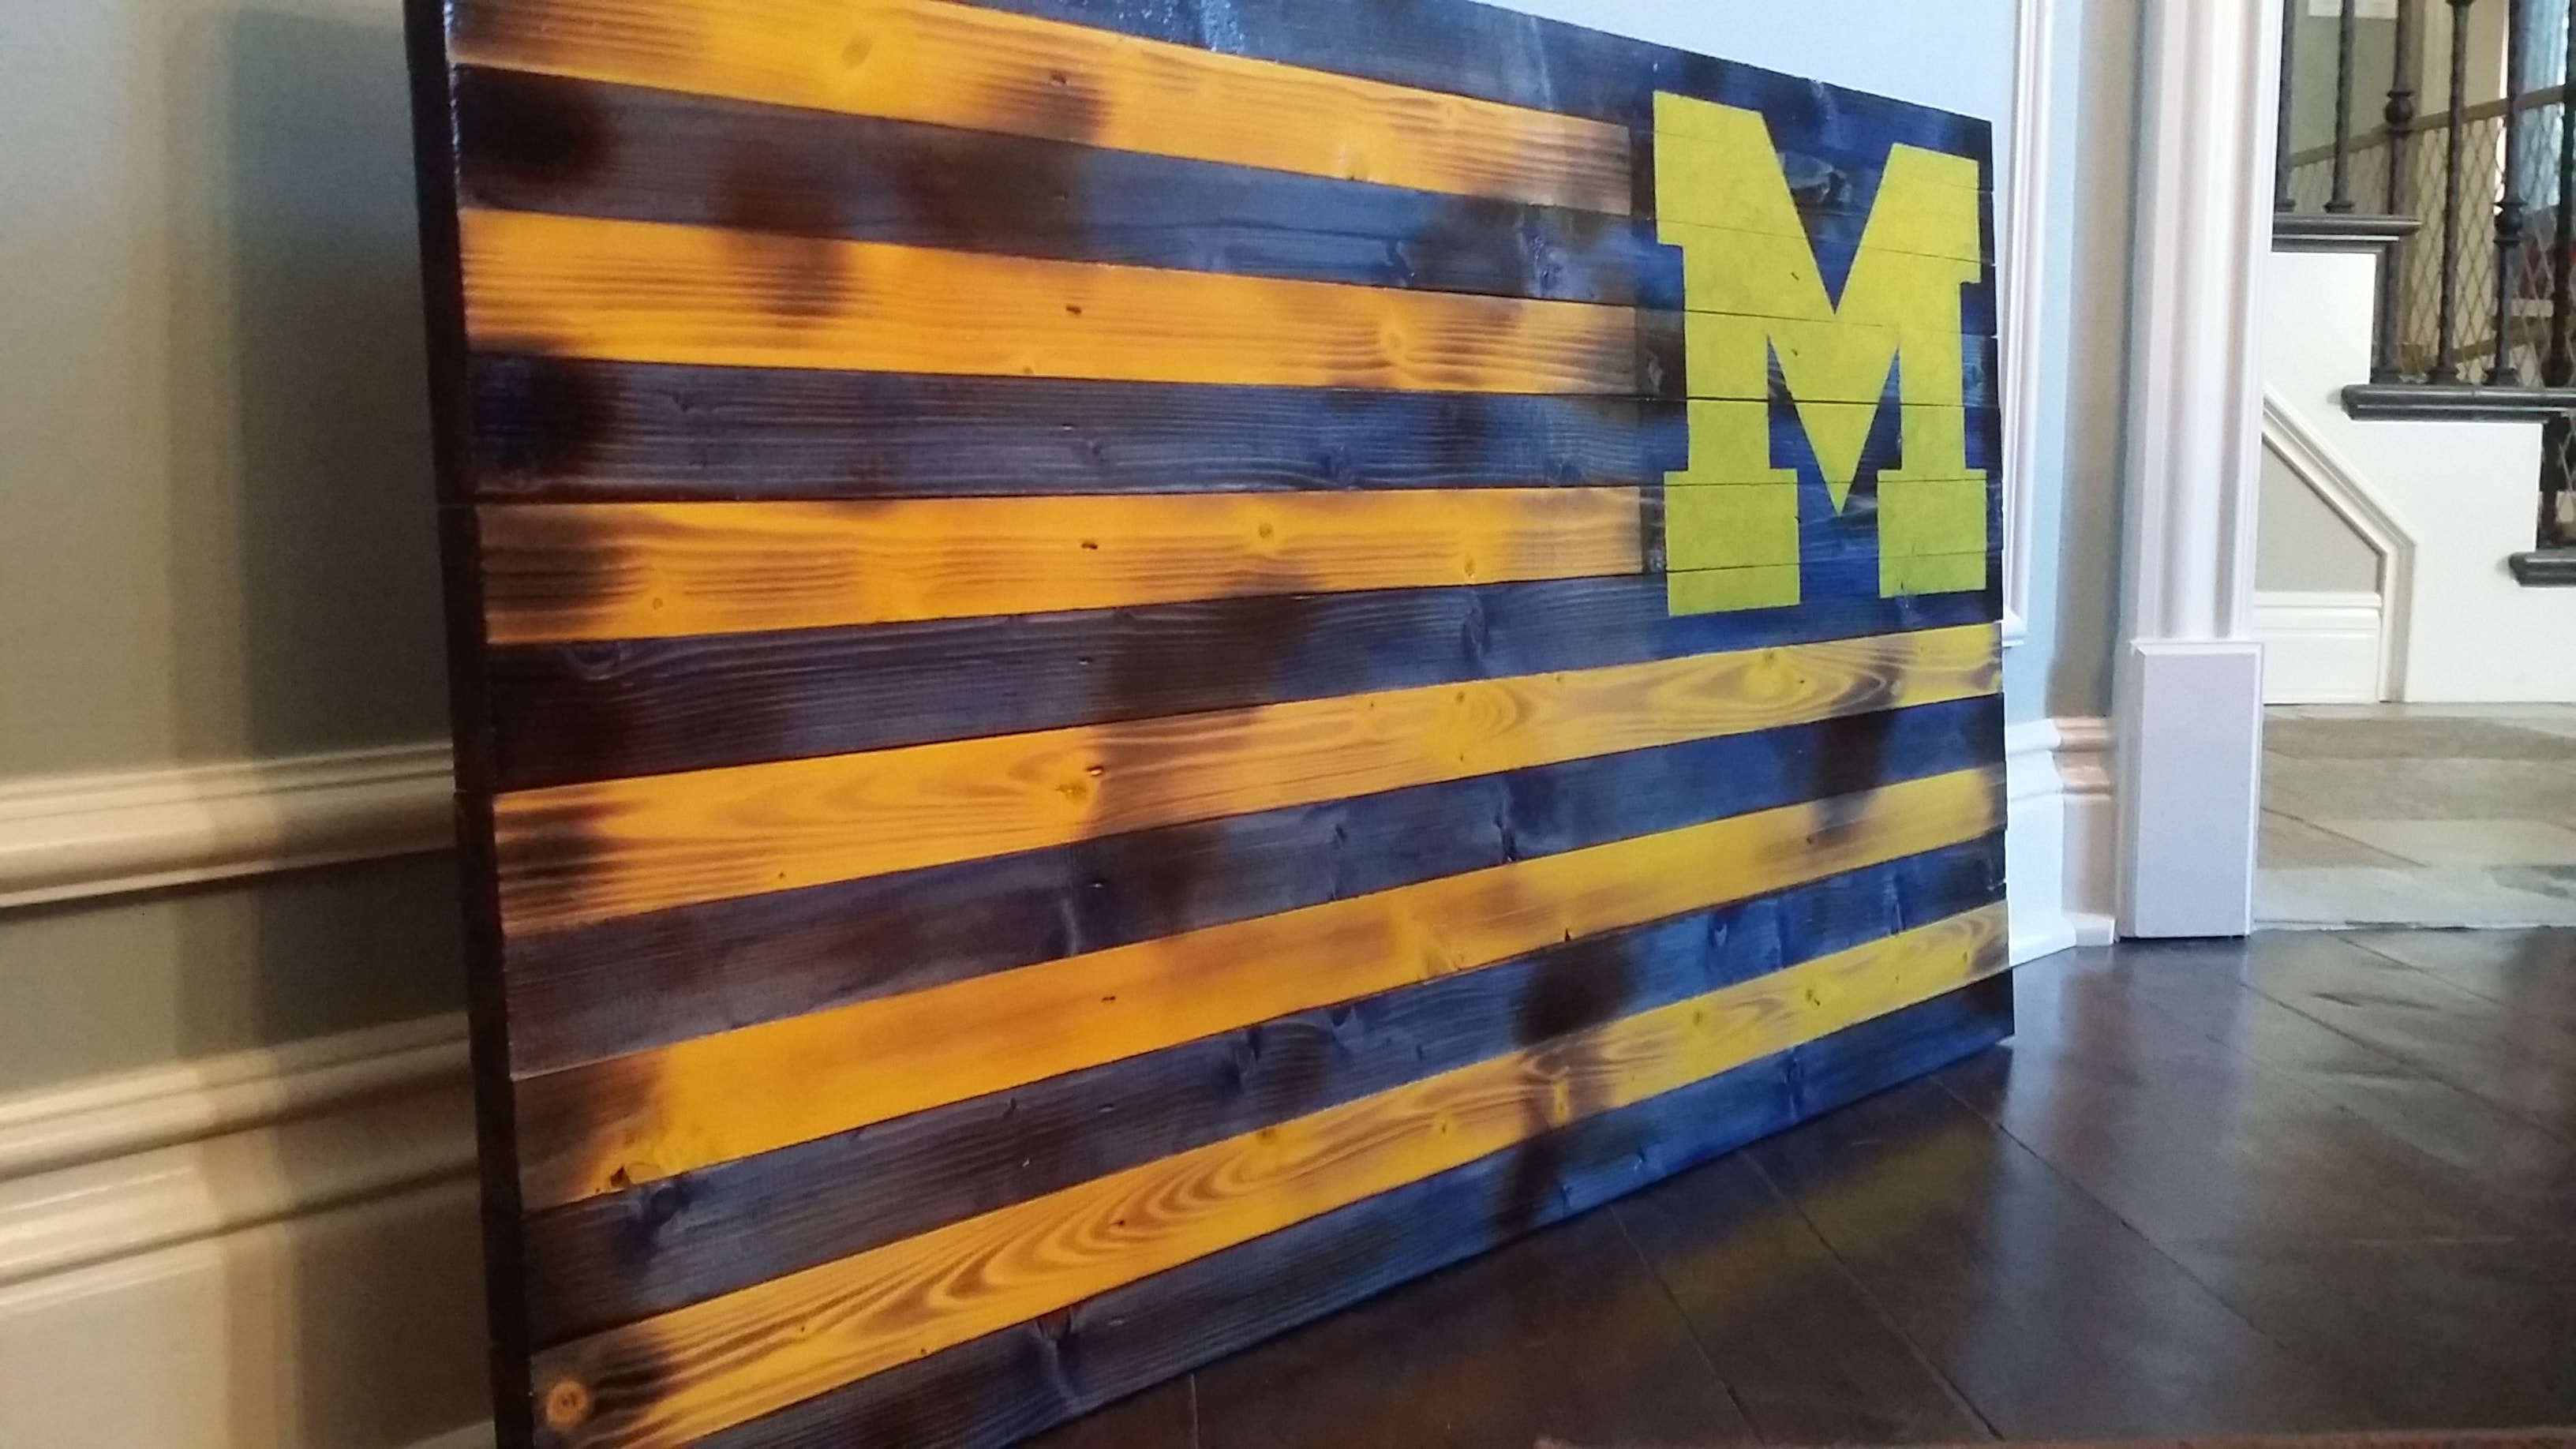 Rustic U Of M Flag With Well Known Michigan Wall Art (Gallery 2 of 20)